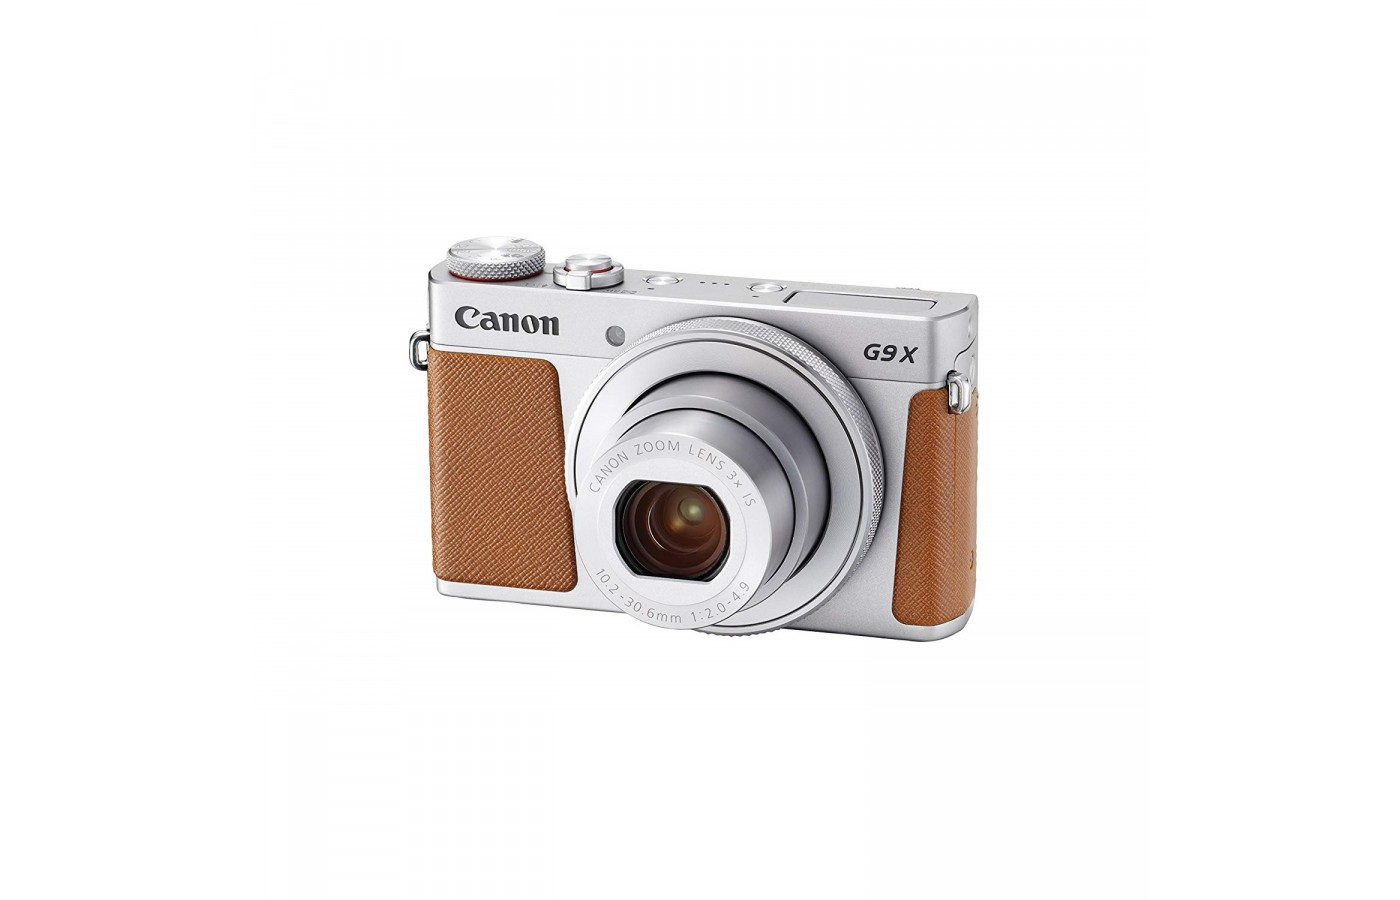 The Canon Powershot G9 X offers a 20 megapixel sensor for capturing high-quality photos.